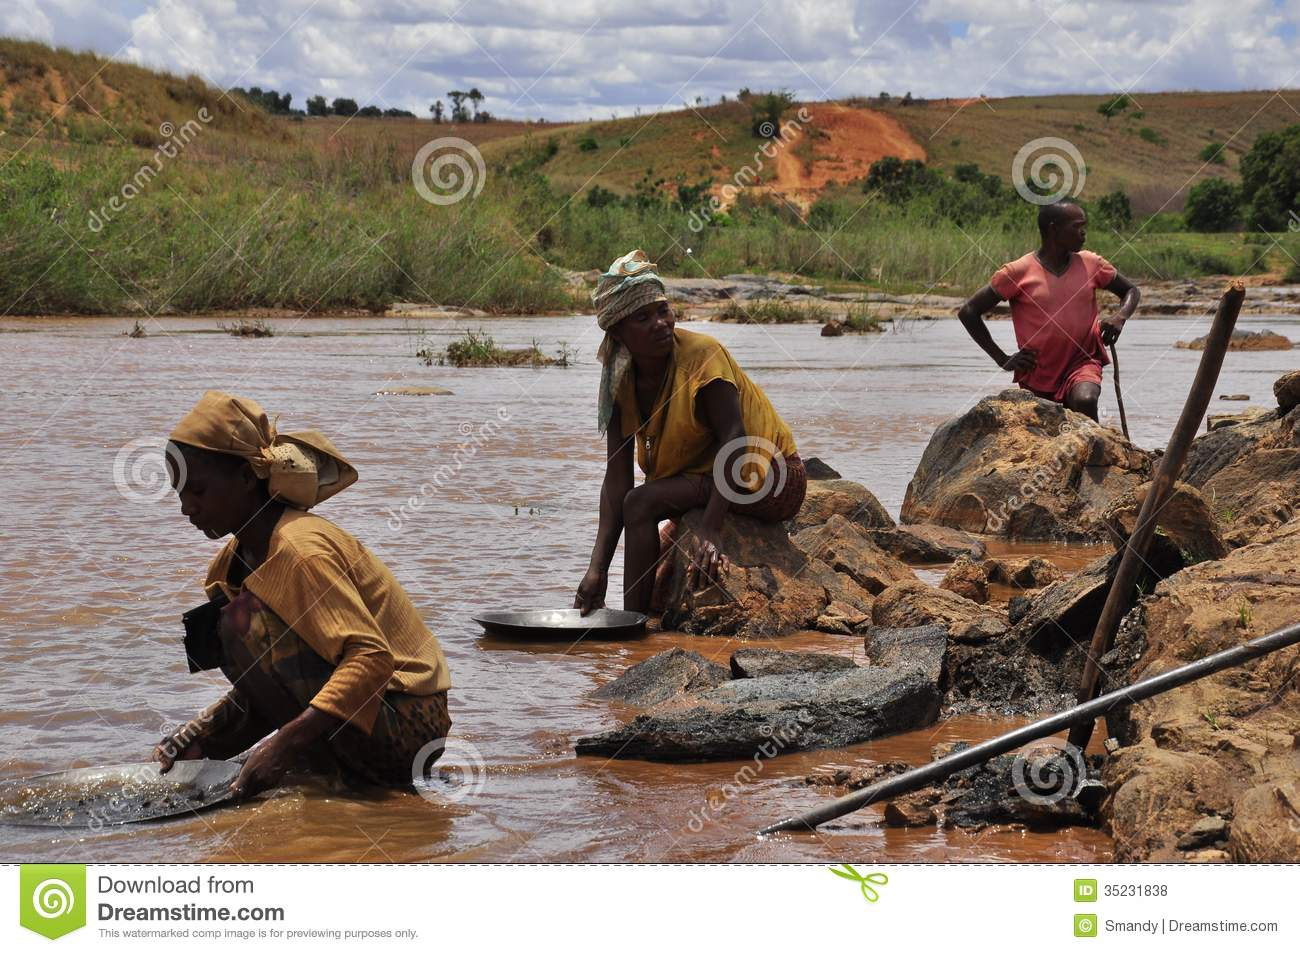 Searching for gold in the river